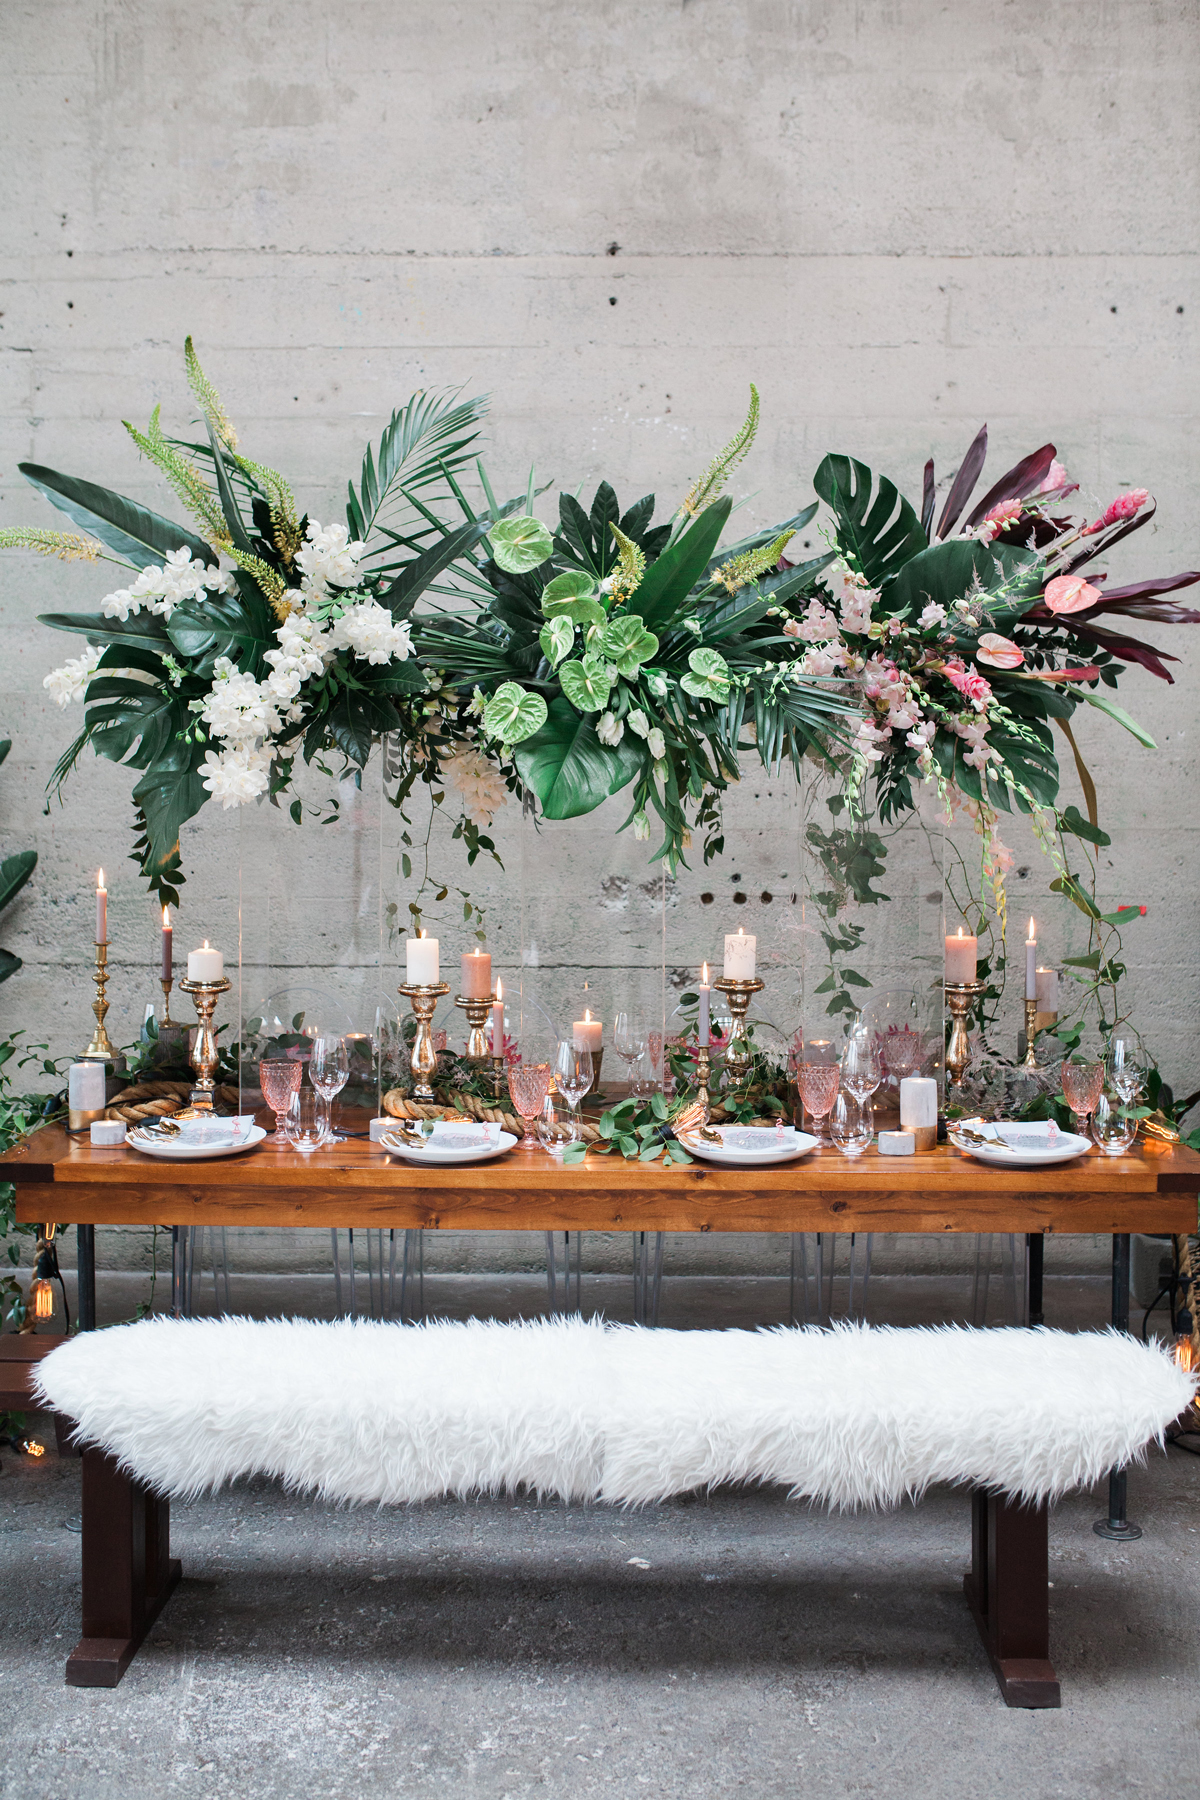 Floating Tropical Florals above reception table